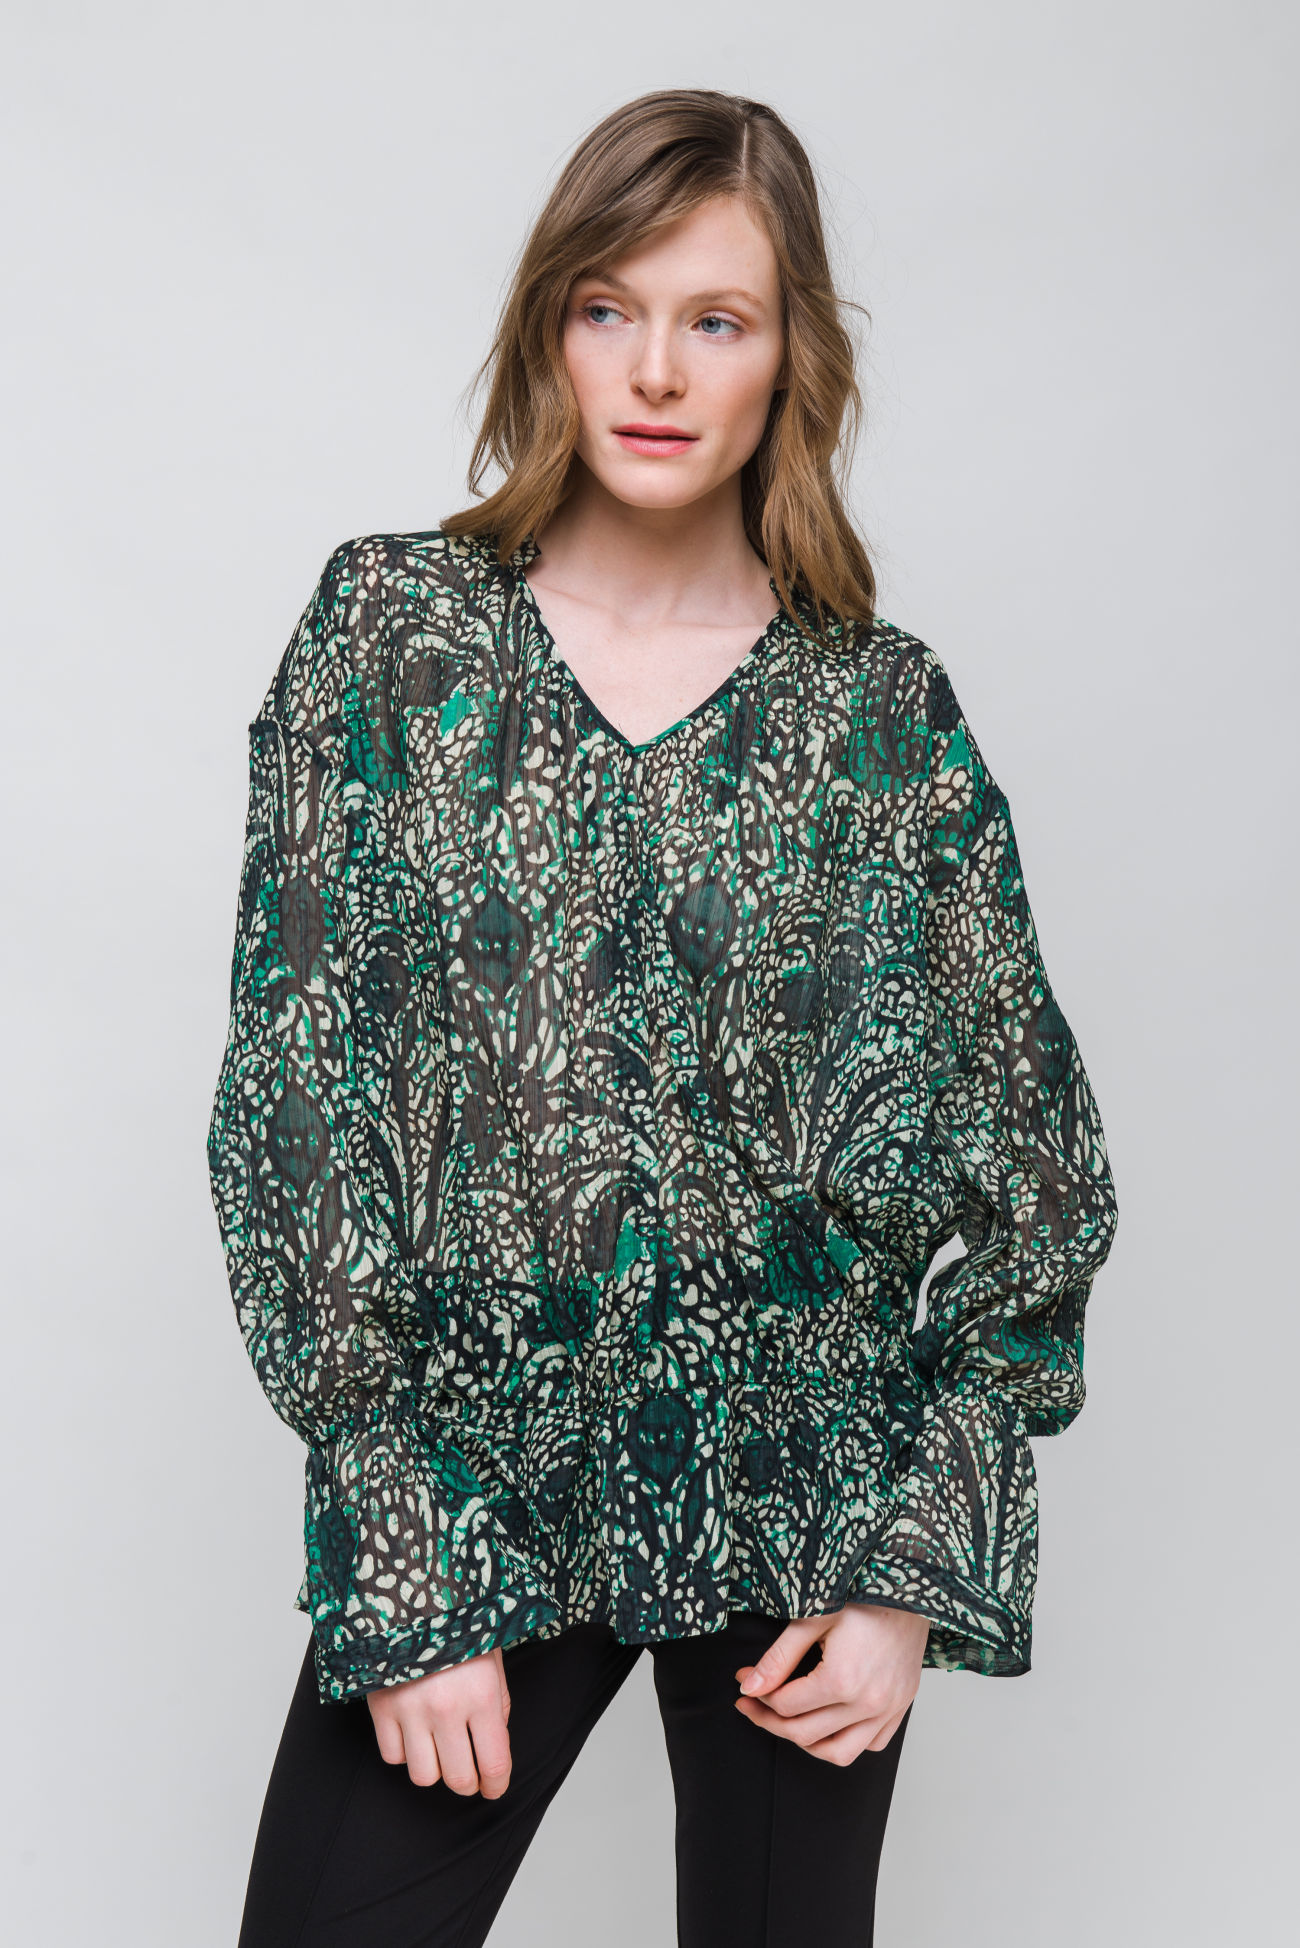 Bluse mit Paisley Muster